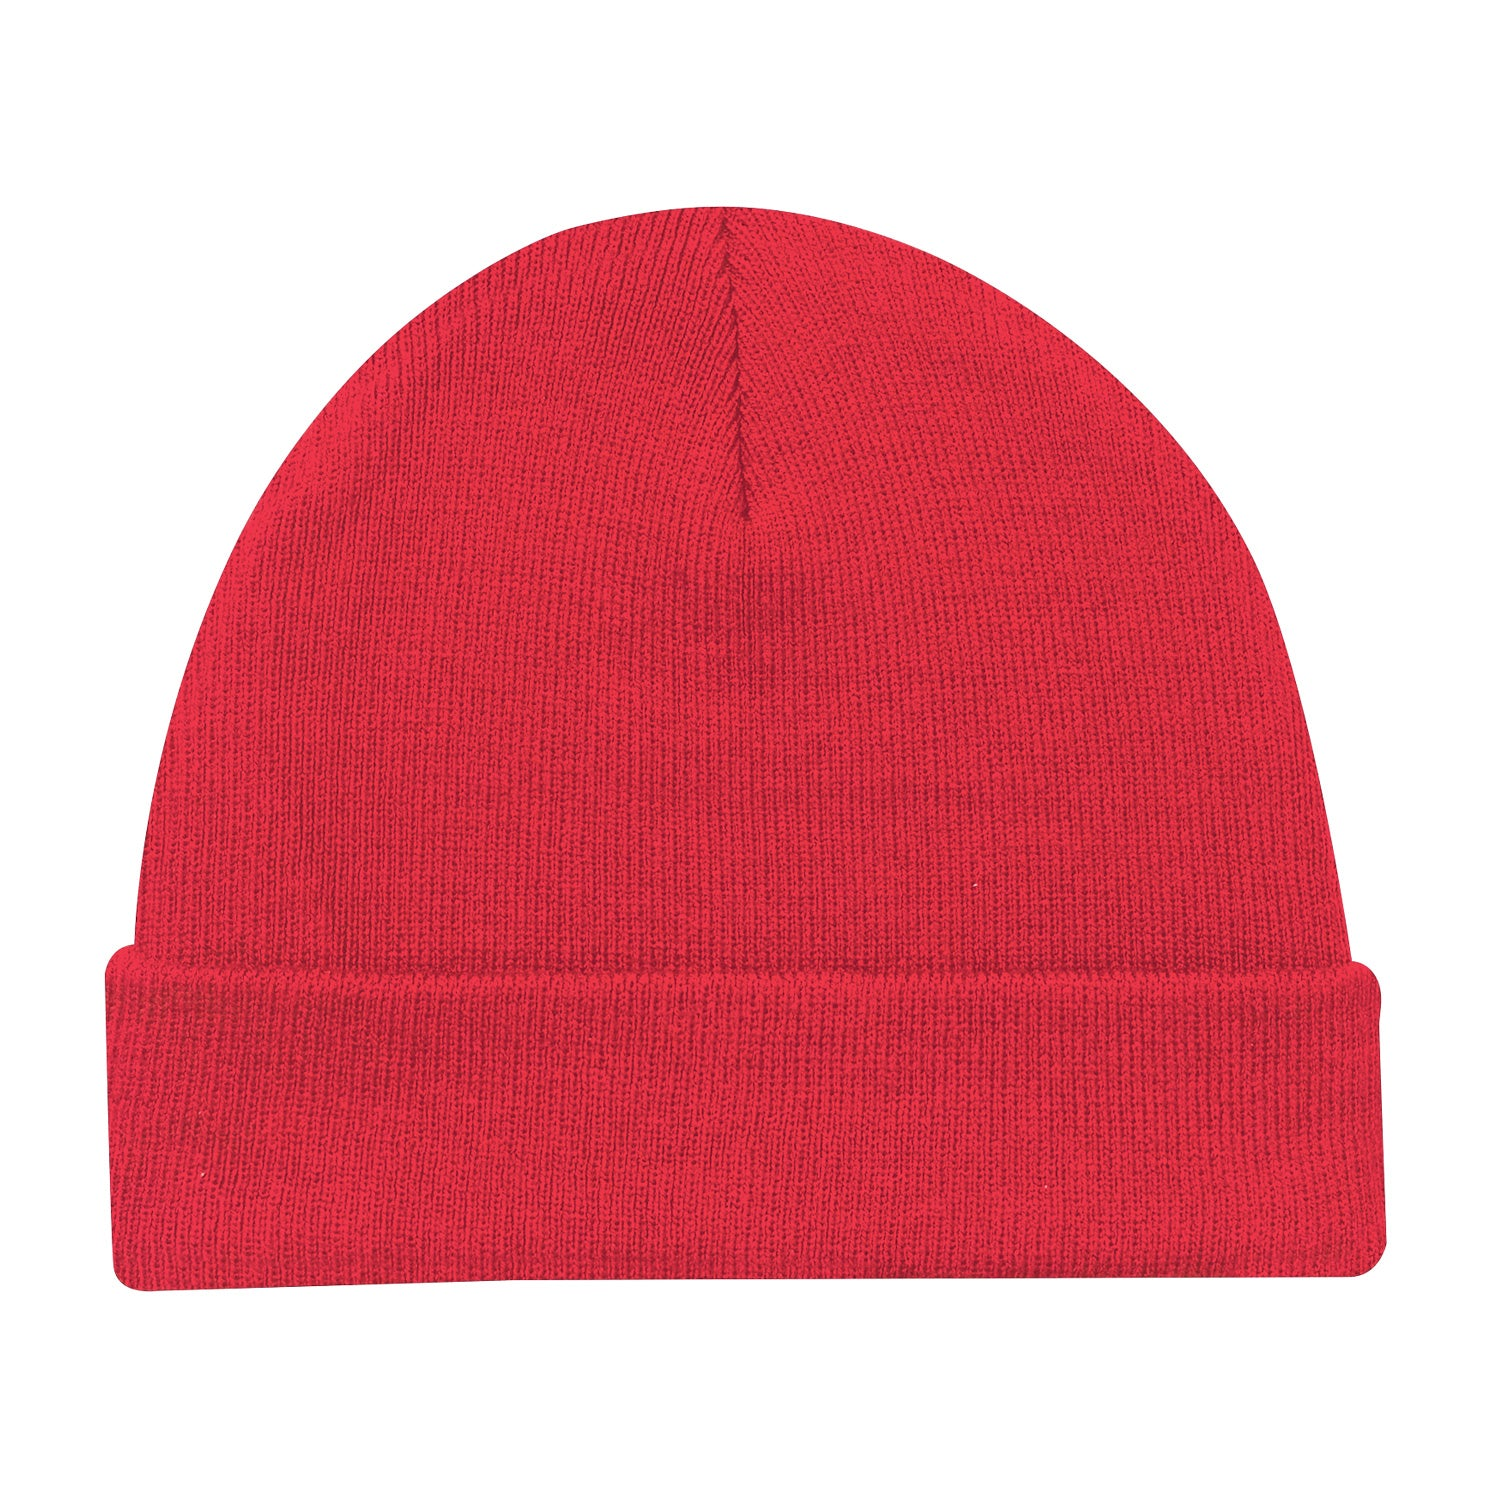 AJM LIGHT WEIGHT ACRYLIC RIB KNIT CUFF TOQUE